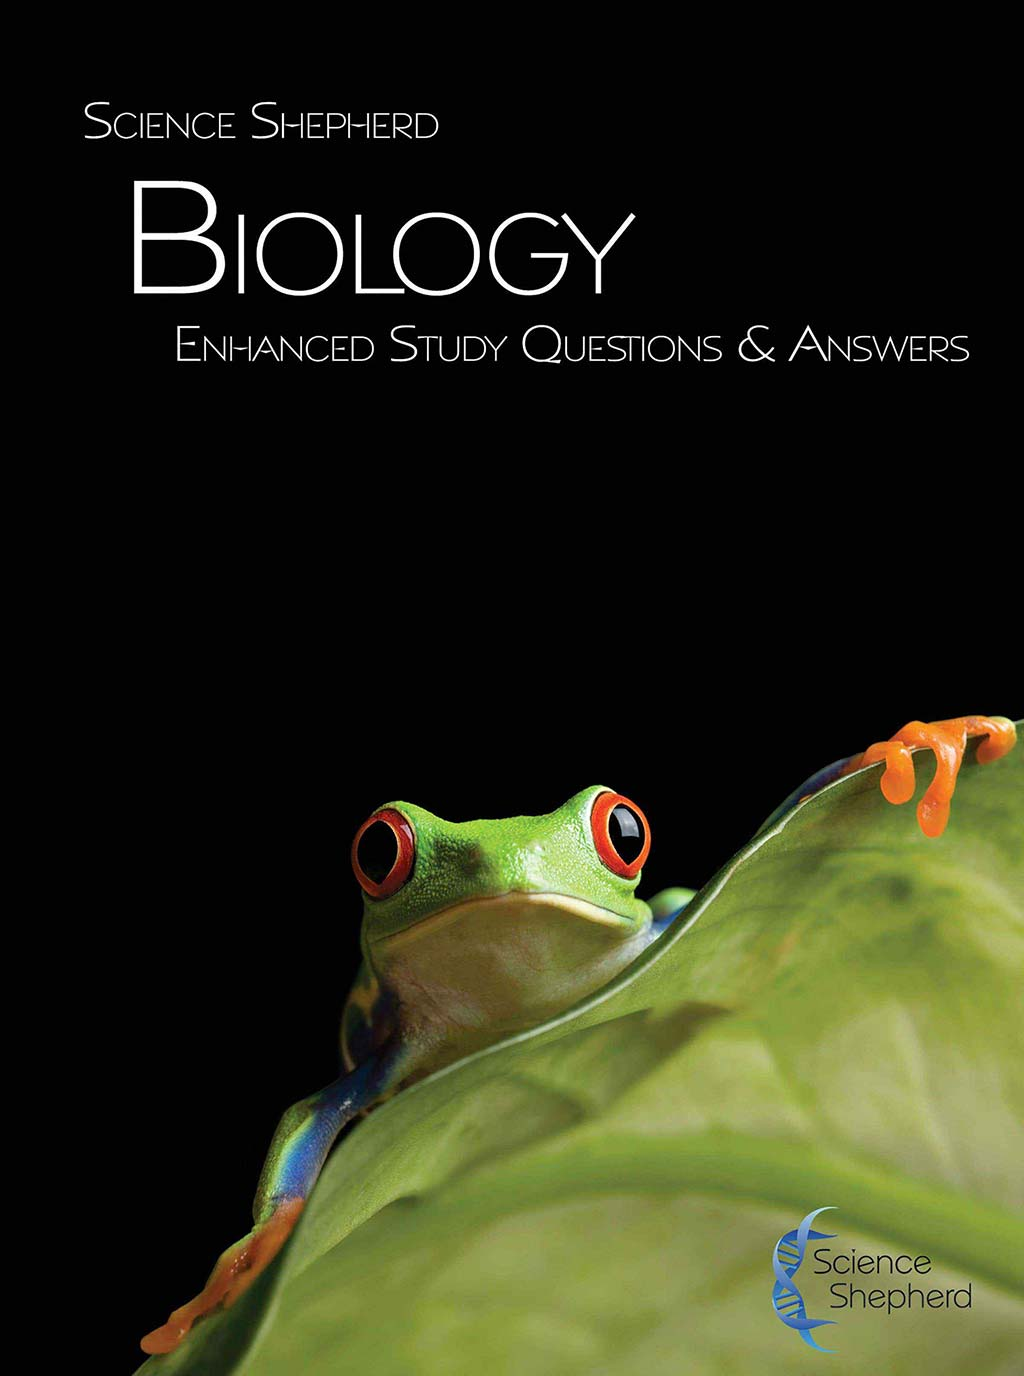 Biology Enhanced Study Question & Answer DVD